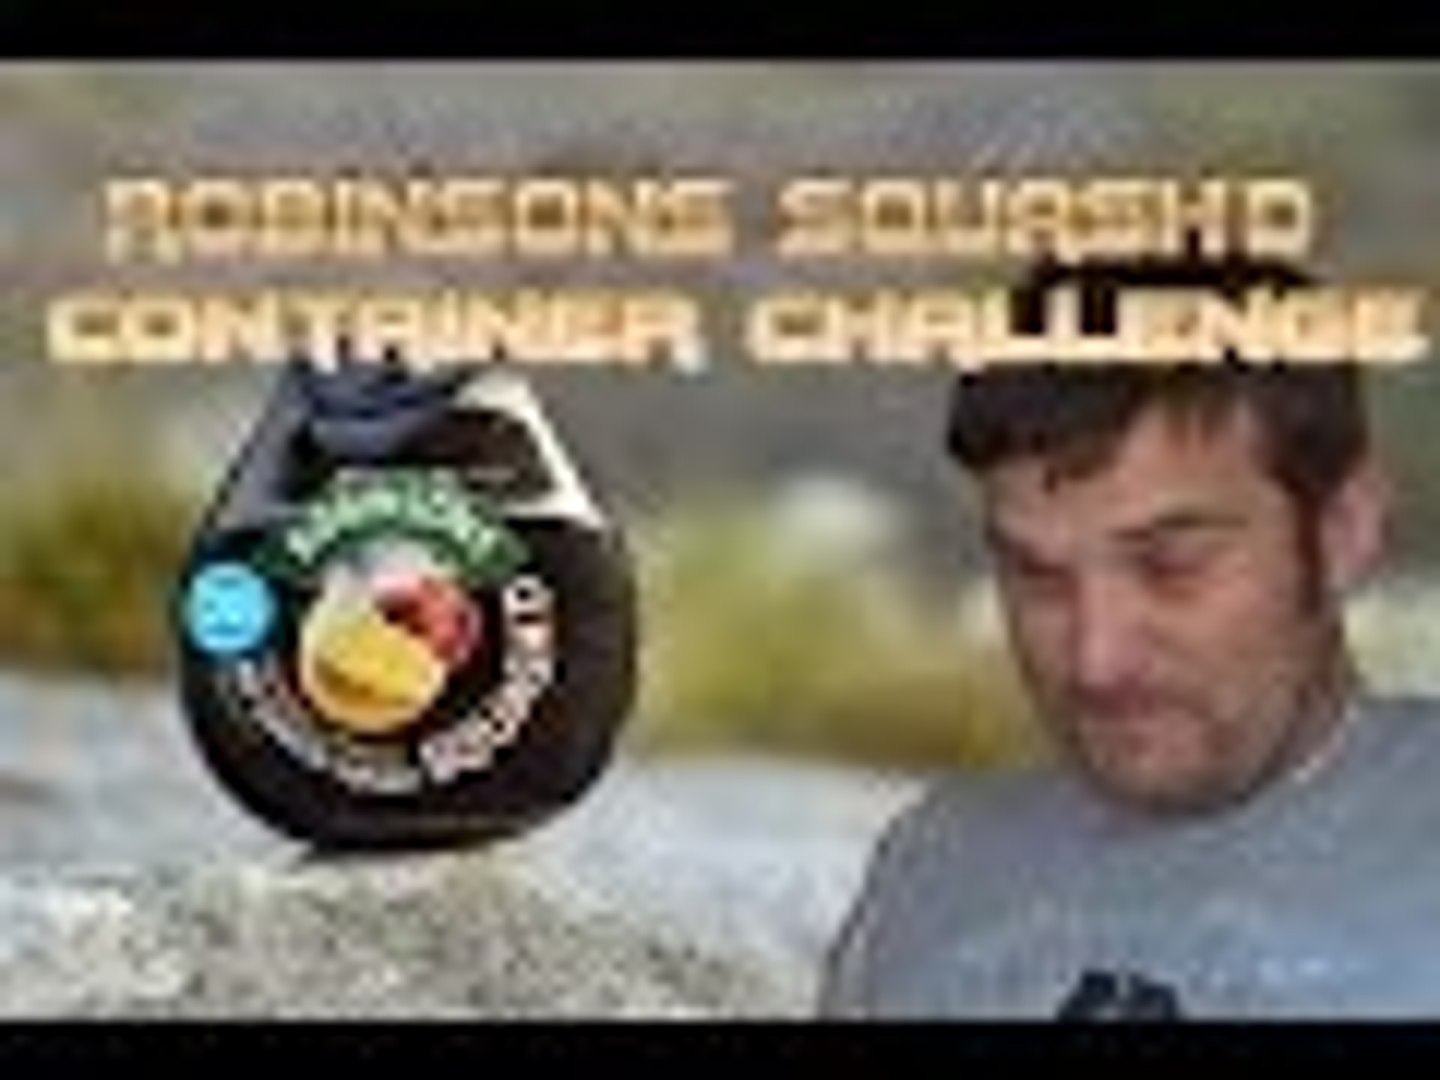 Robinsons Squash'd Whole Container Challenge | SUPERMADHOUSE83